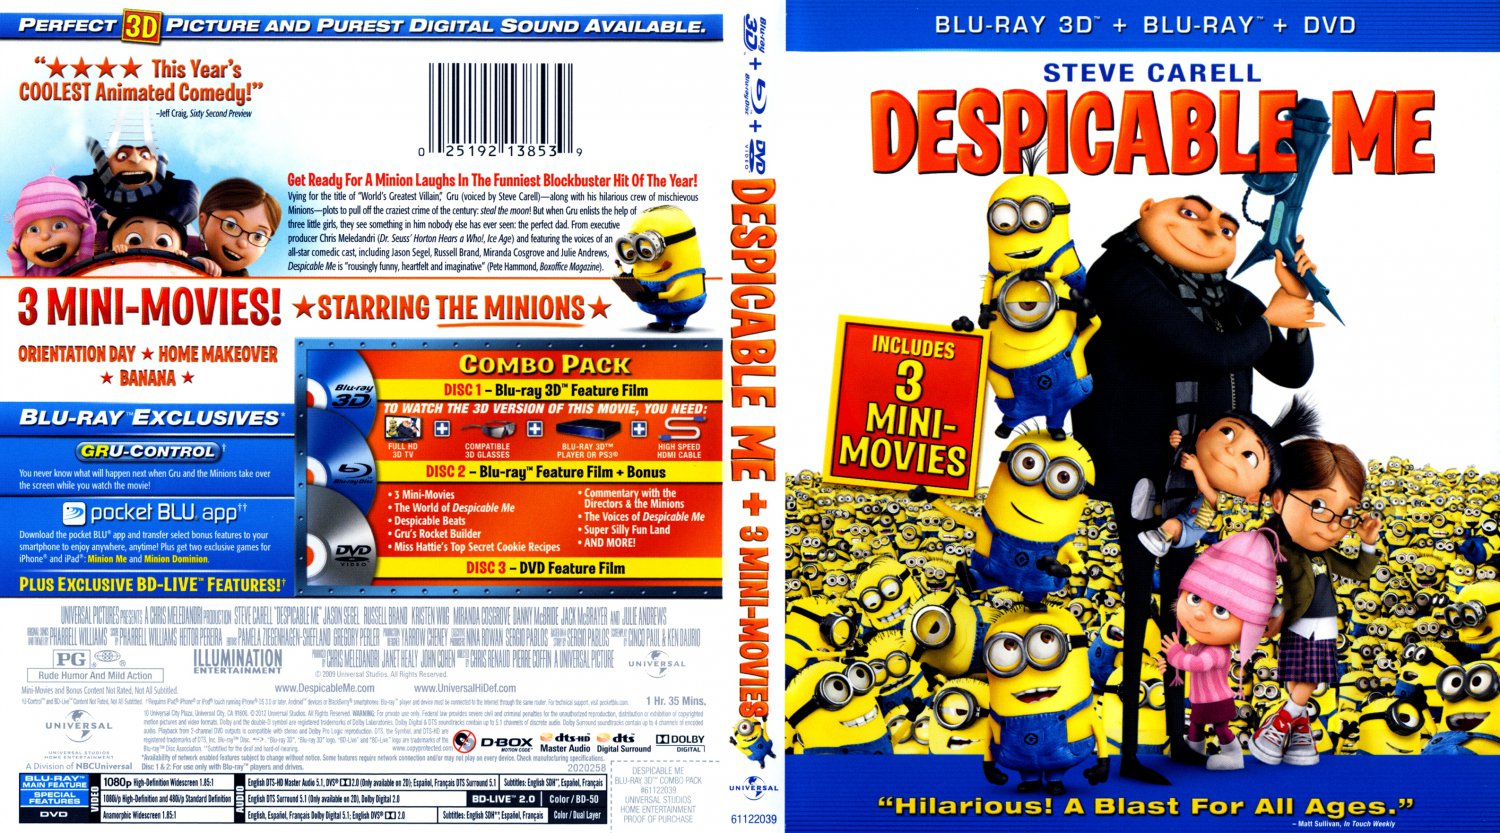 Despicable me 1 movie cover